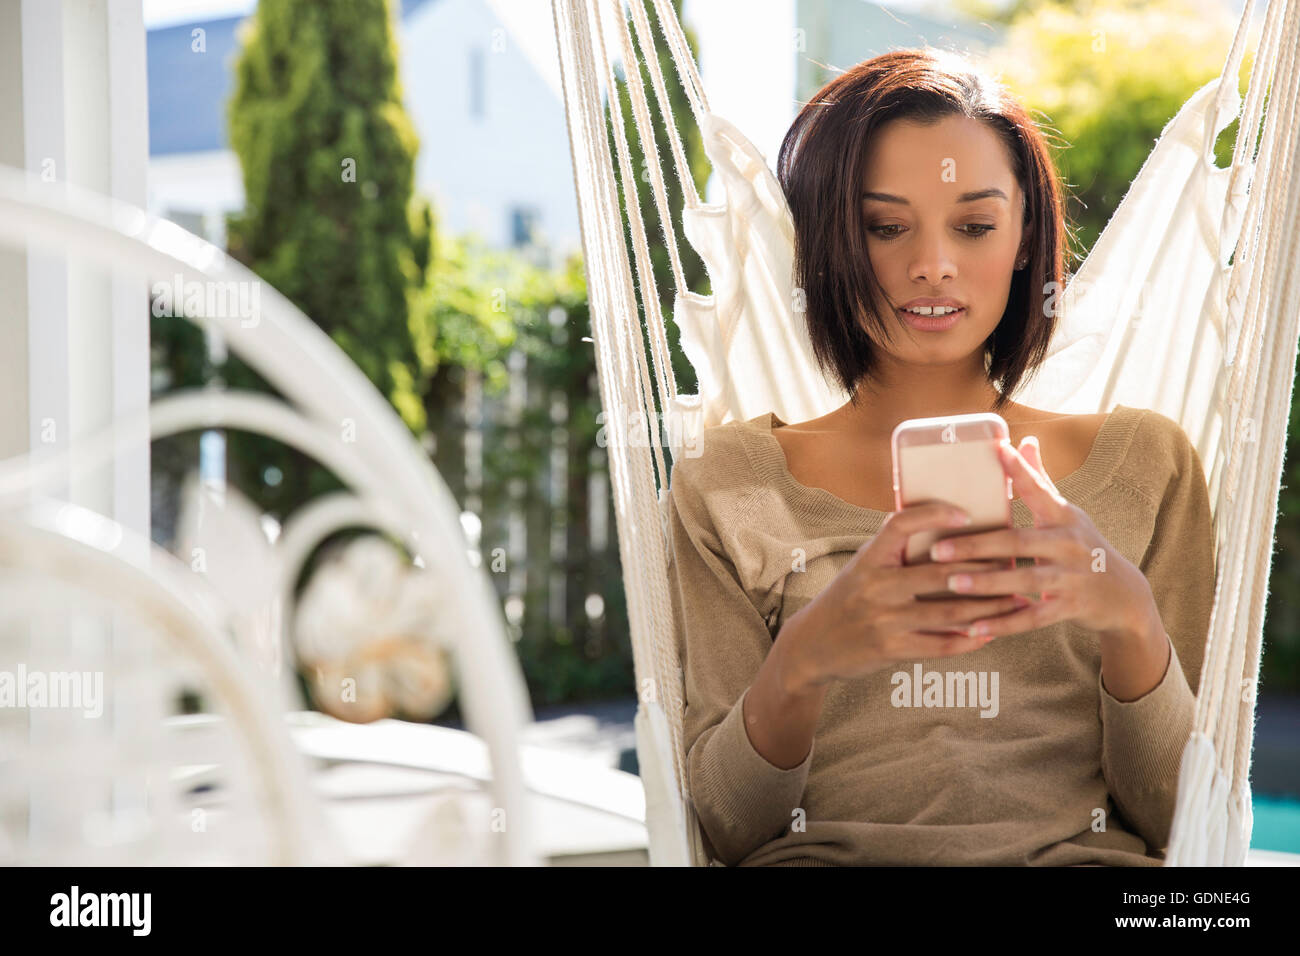 Young woman relaxing on garden hammock reading smartphone texts - Stock Image